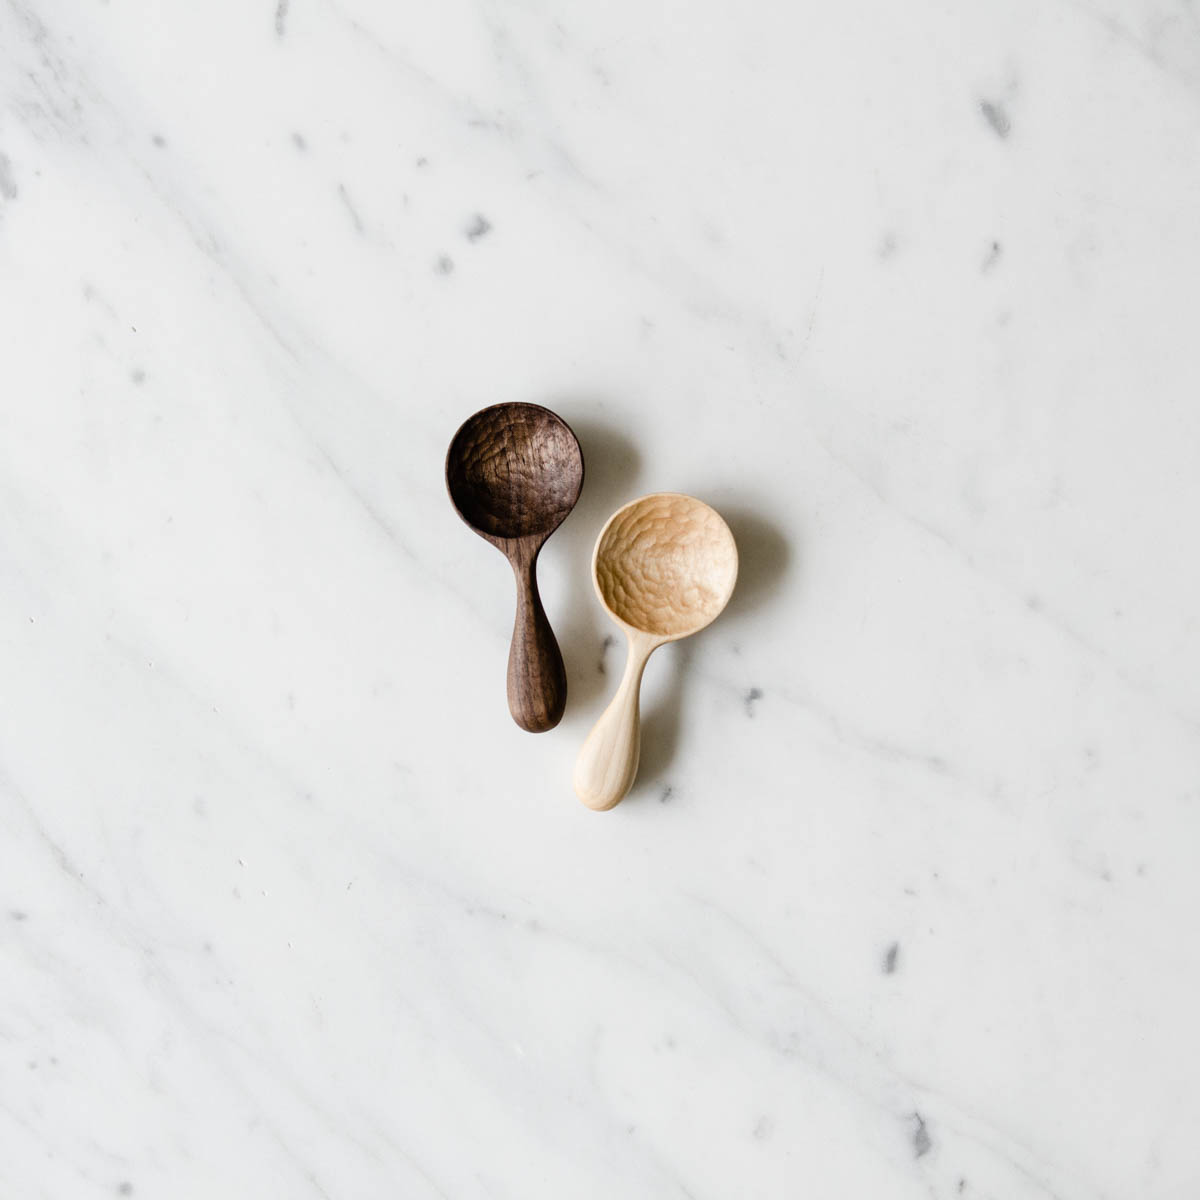 WOODEN-COFFEE-SCOOPS-WEBSITE.jpg